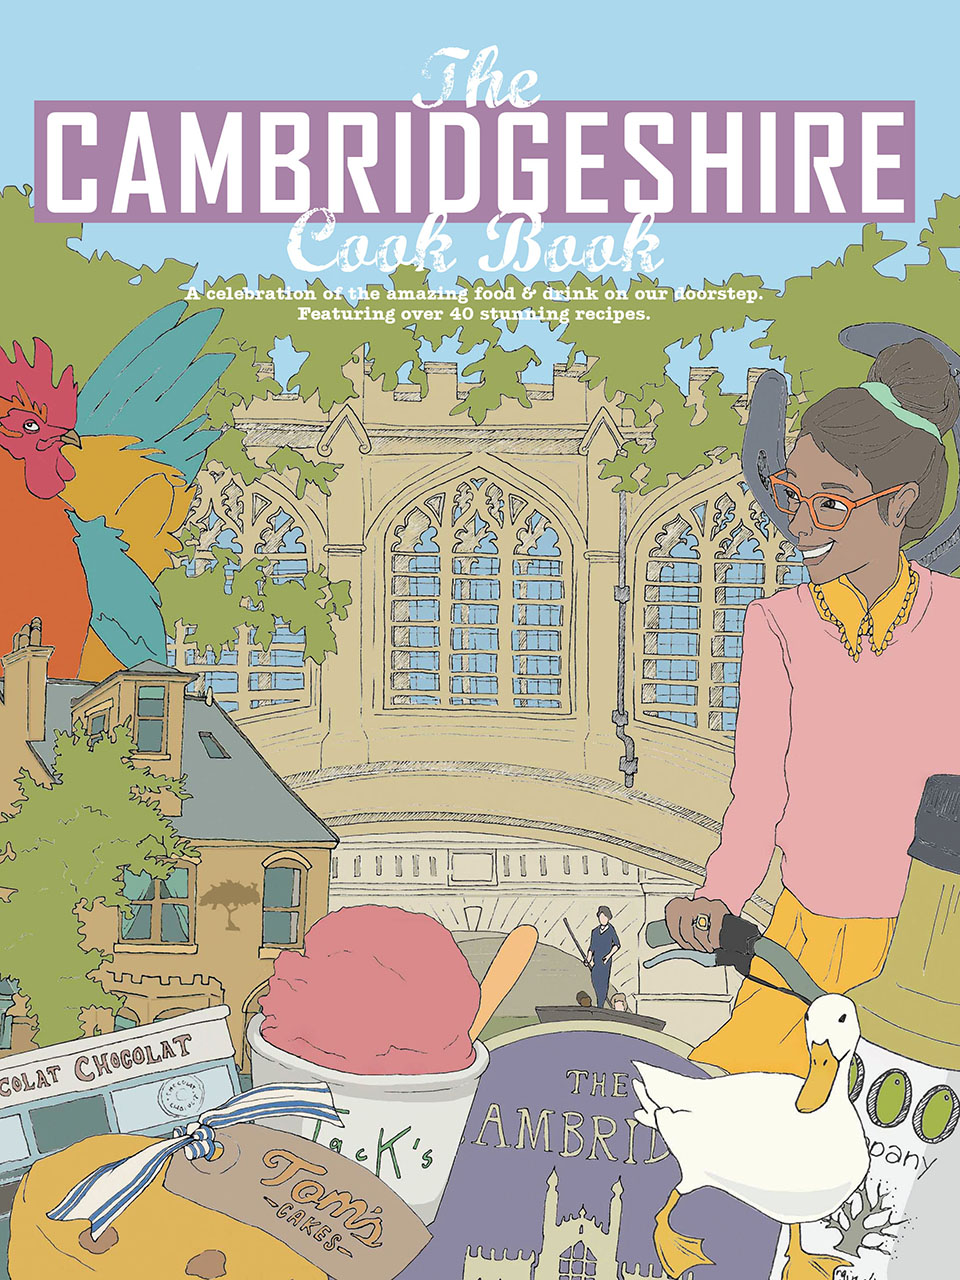 The Cambridgeshire Cook Book